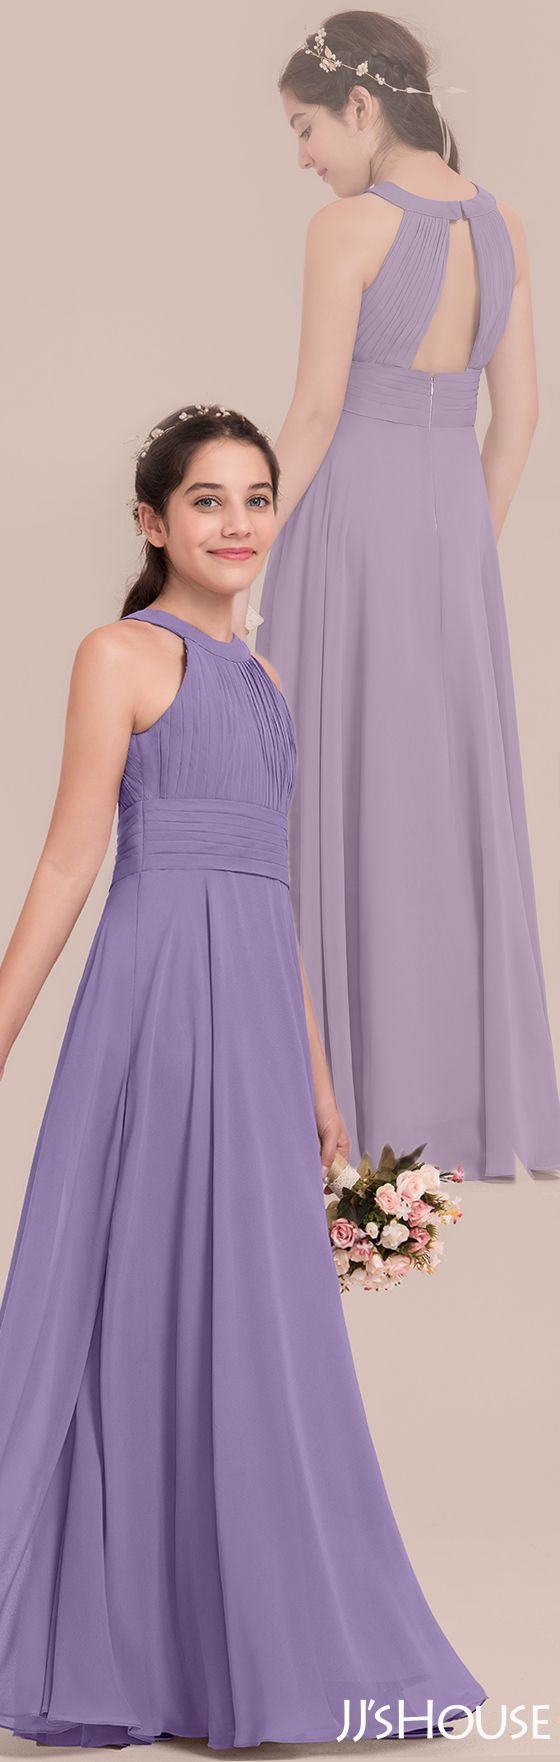 What a marvelous junior bridesmaid dress! #JJsHouse #Junior #Bridesmaid